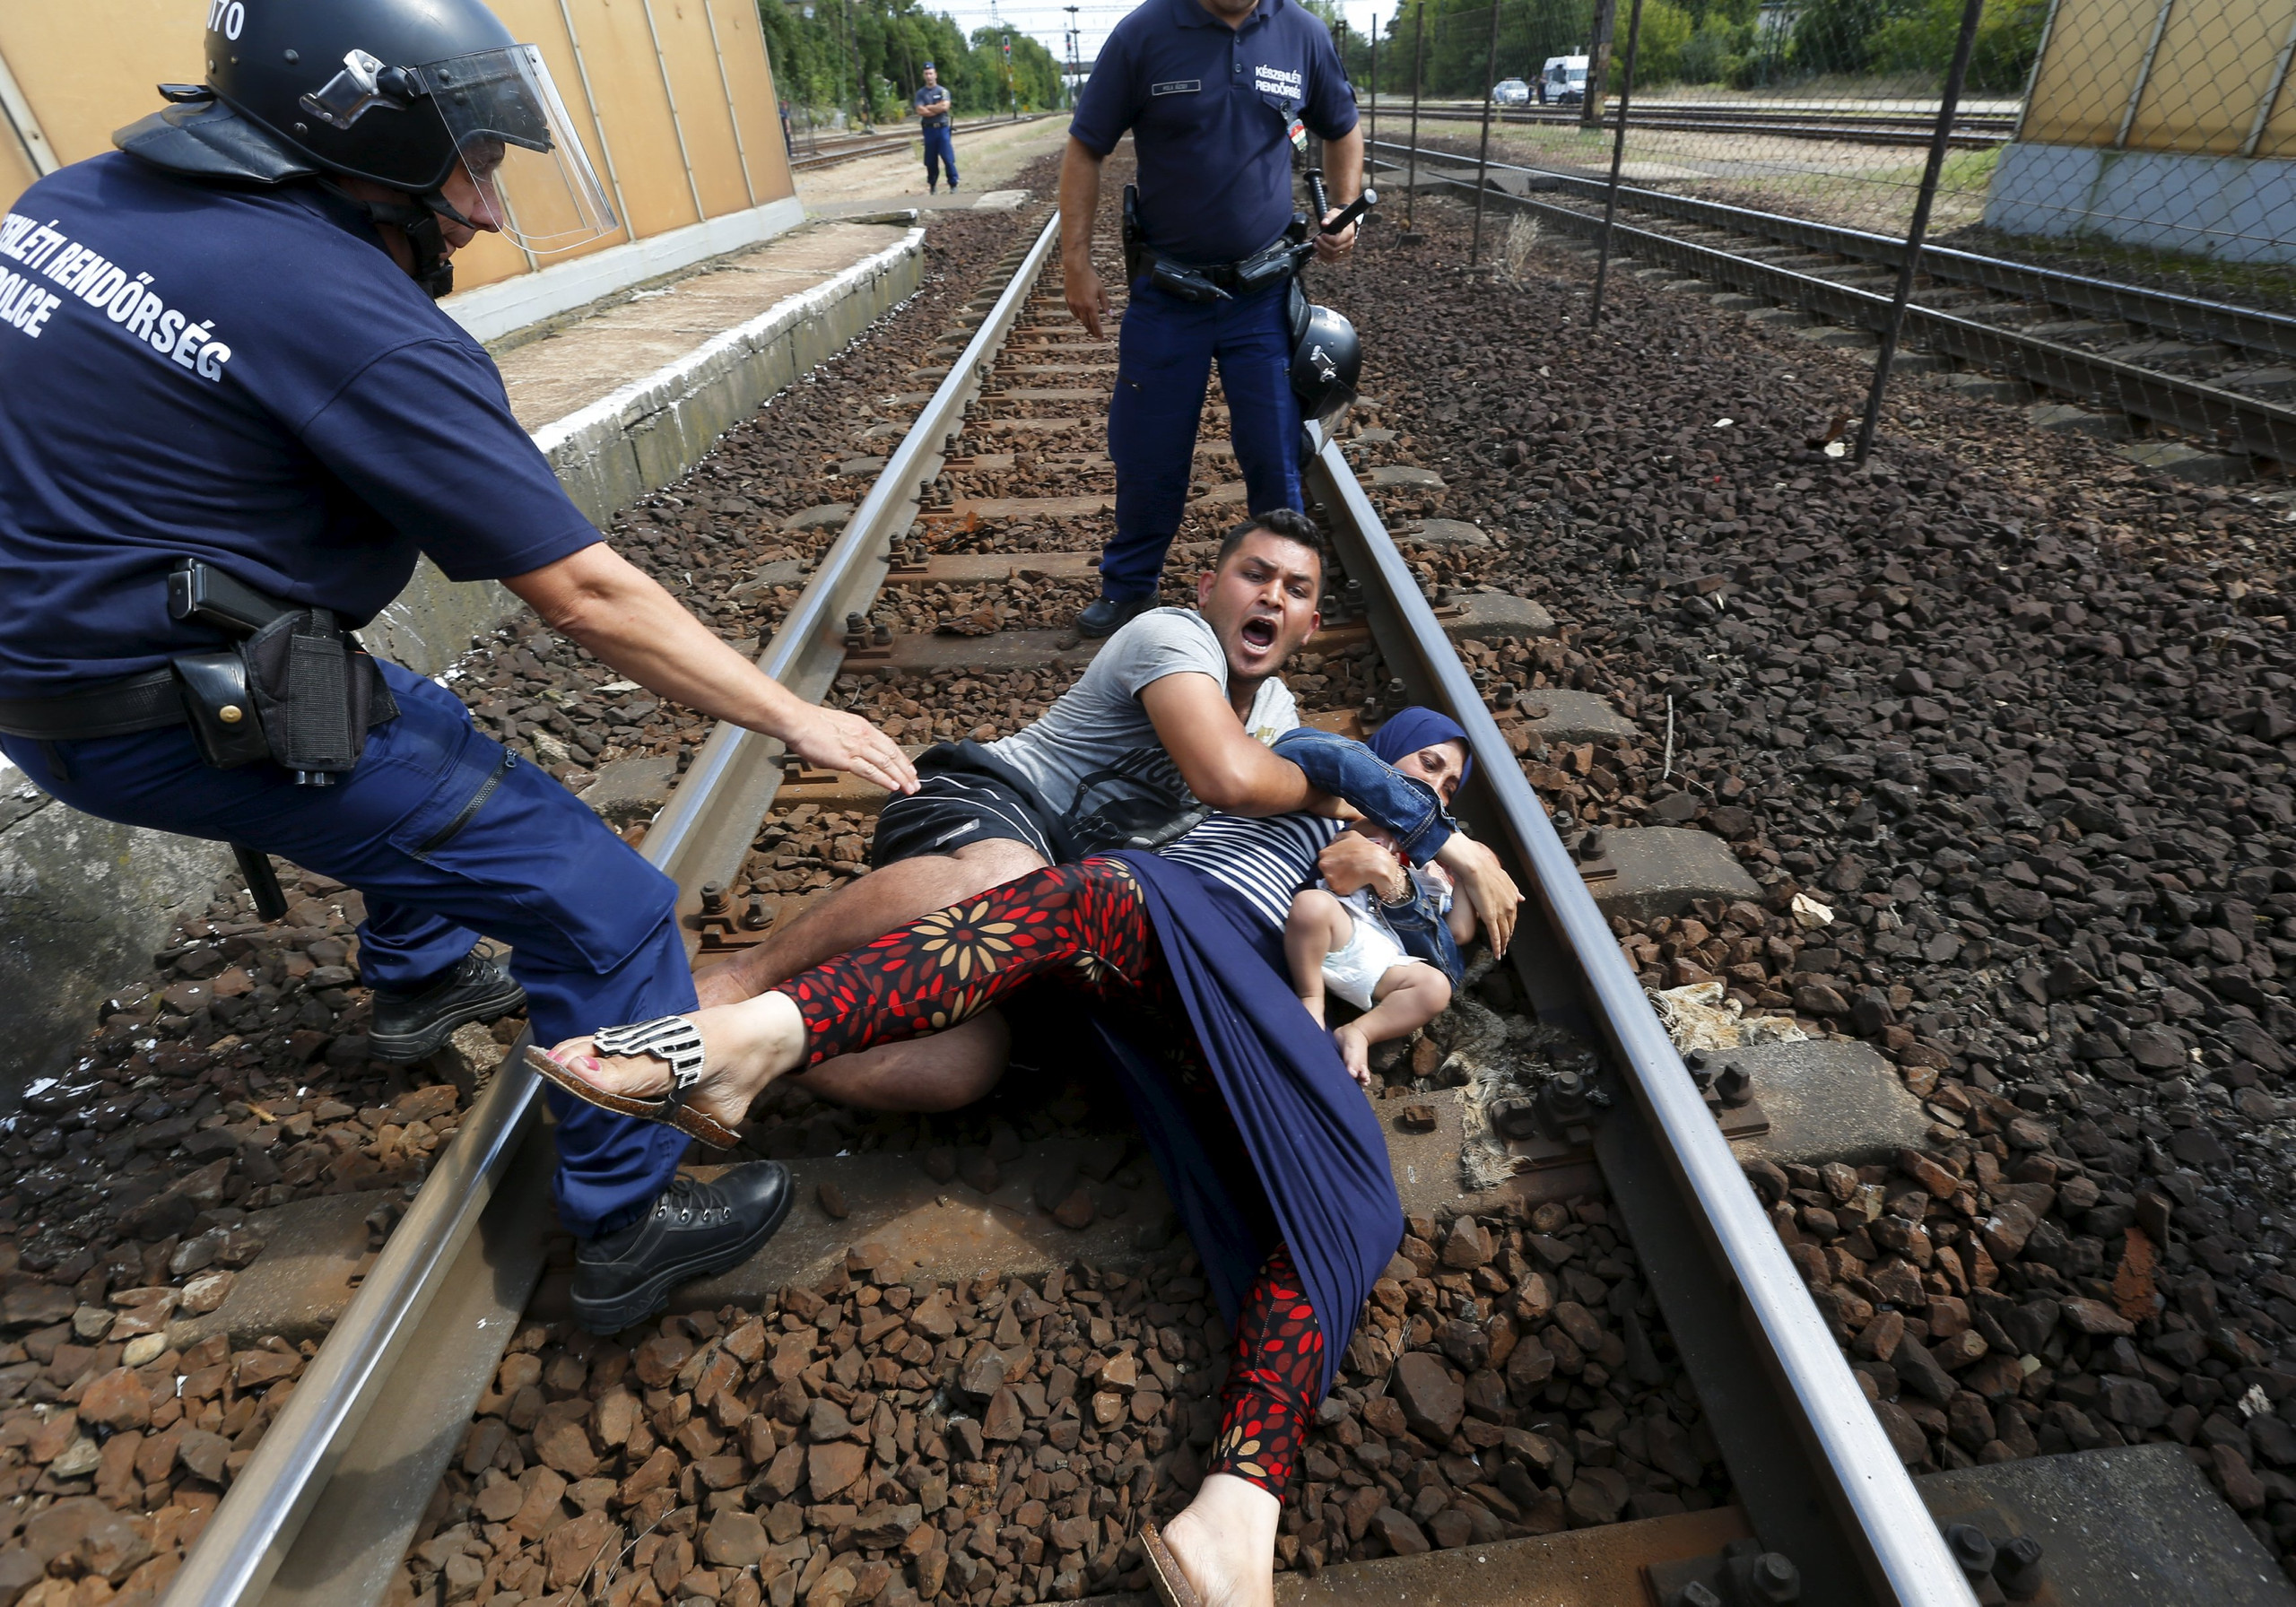 """Hungarian policemen stand by the family of migrants as they wanted to run away at the railway station in the town of Bicske, Hungary, September 3, 2015. REUTERS/Laszlo Balogh     SEARCH """"YEAREND 2015: MIGRANT CRISIS"""" FOR ALL 55 PICTURES"""